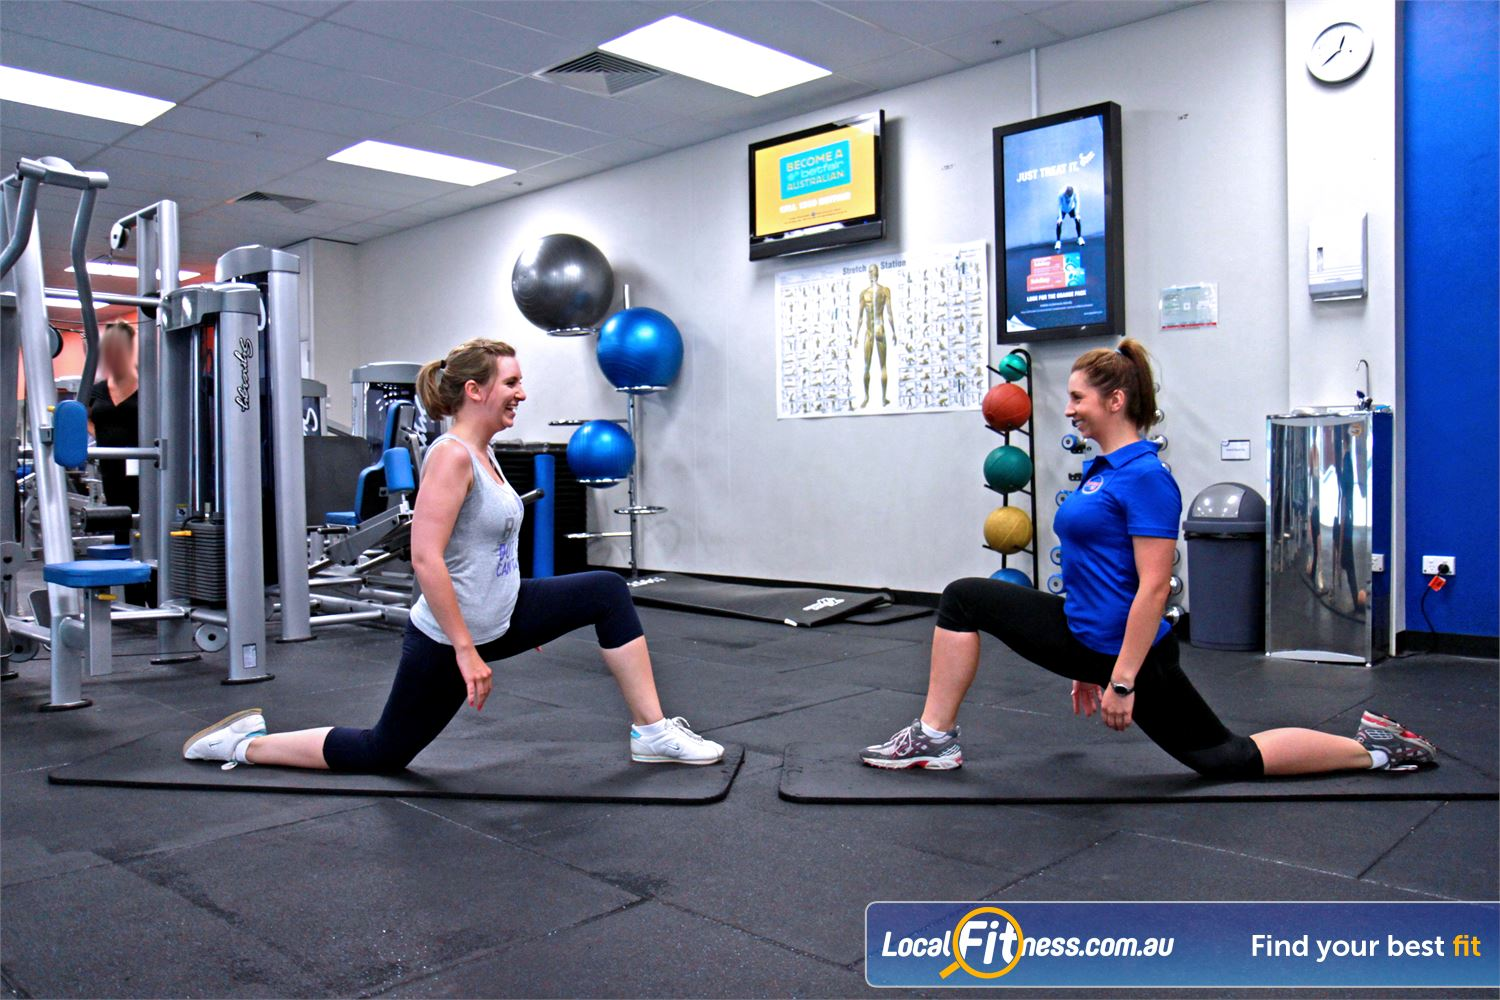 Goodlife Health Clubs North Adelaide The dedicated and spacious North Adelaide group fitness studio.